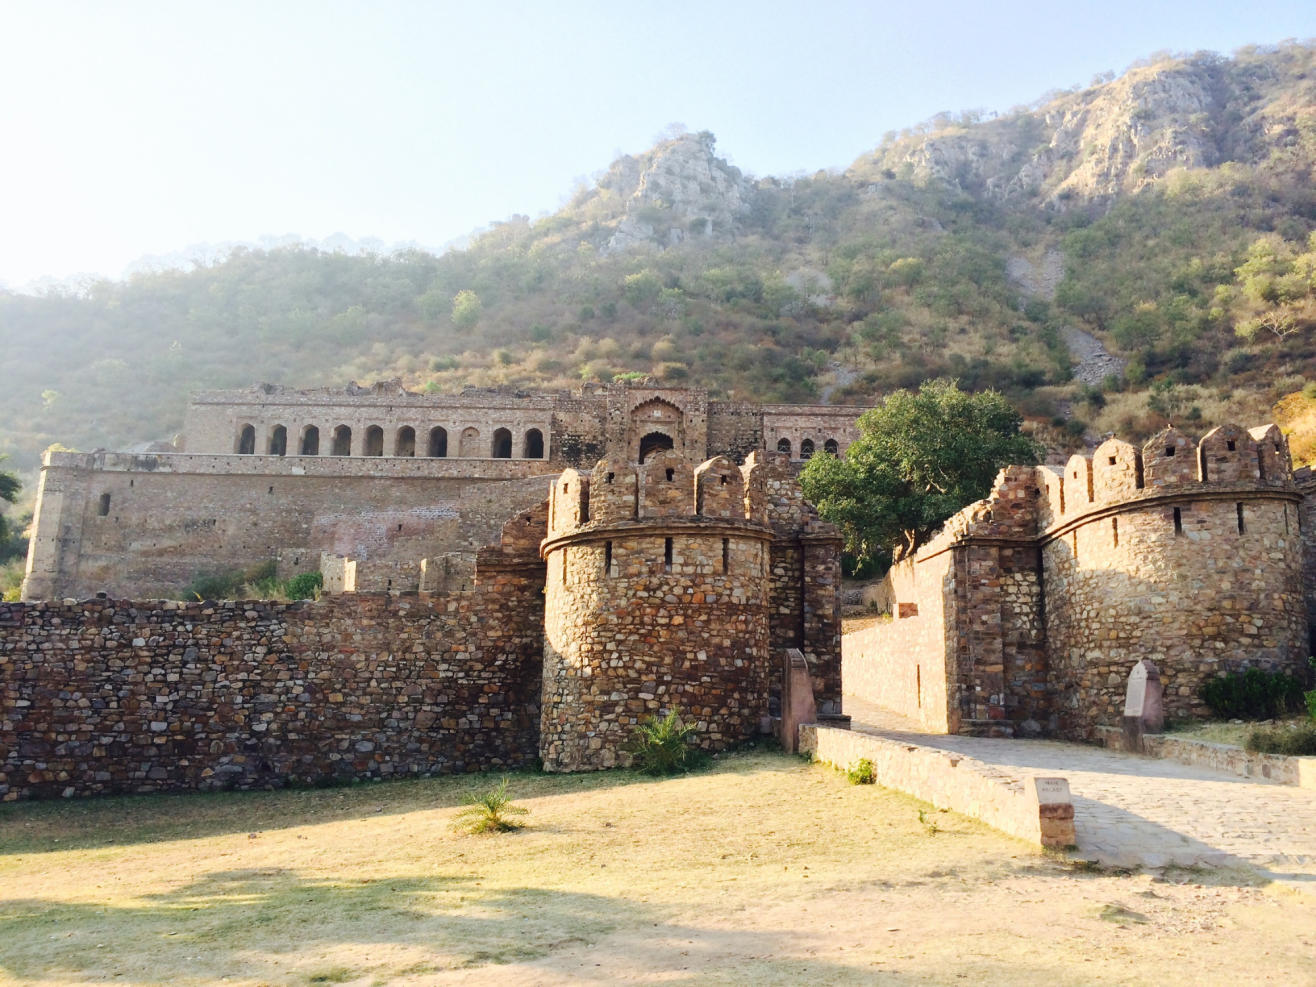 Bhangarh Fort and Ancient Site, Bhangarh